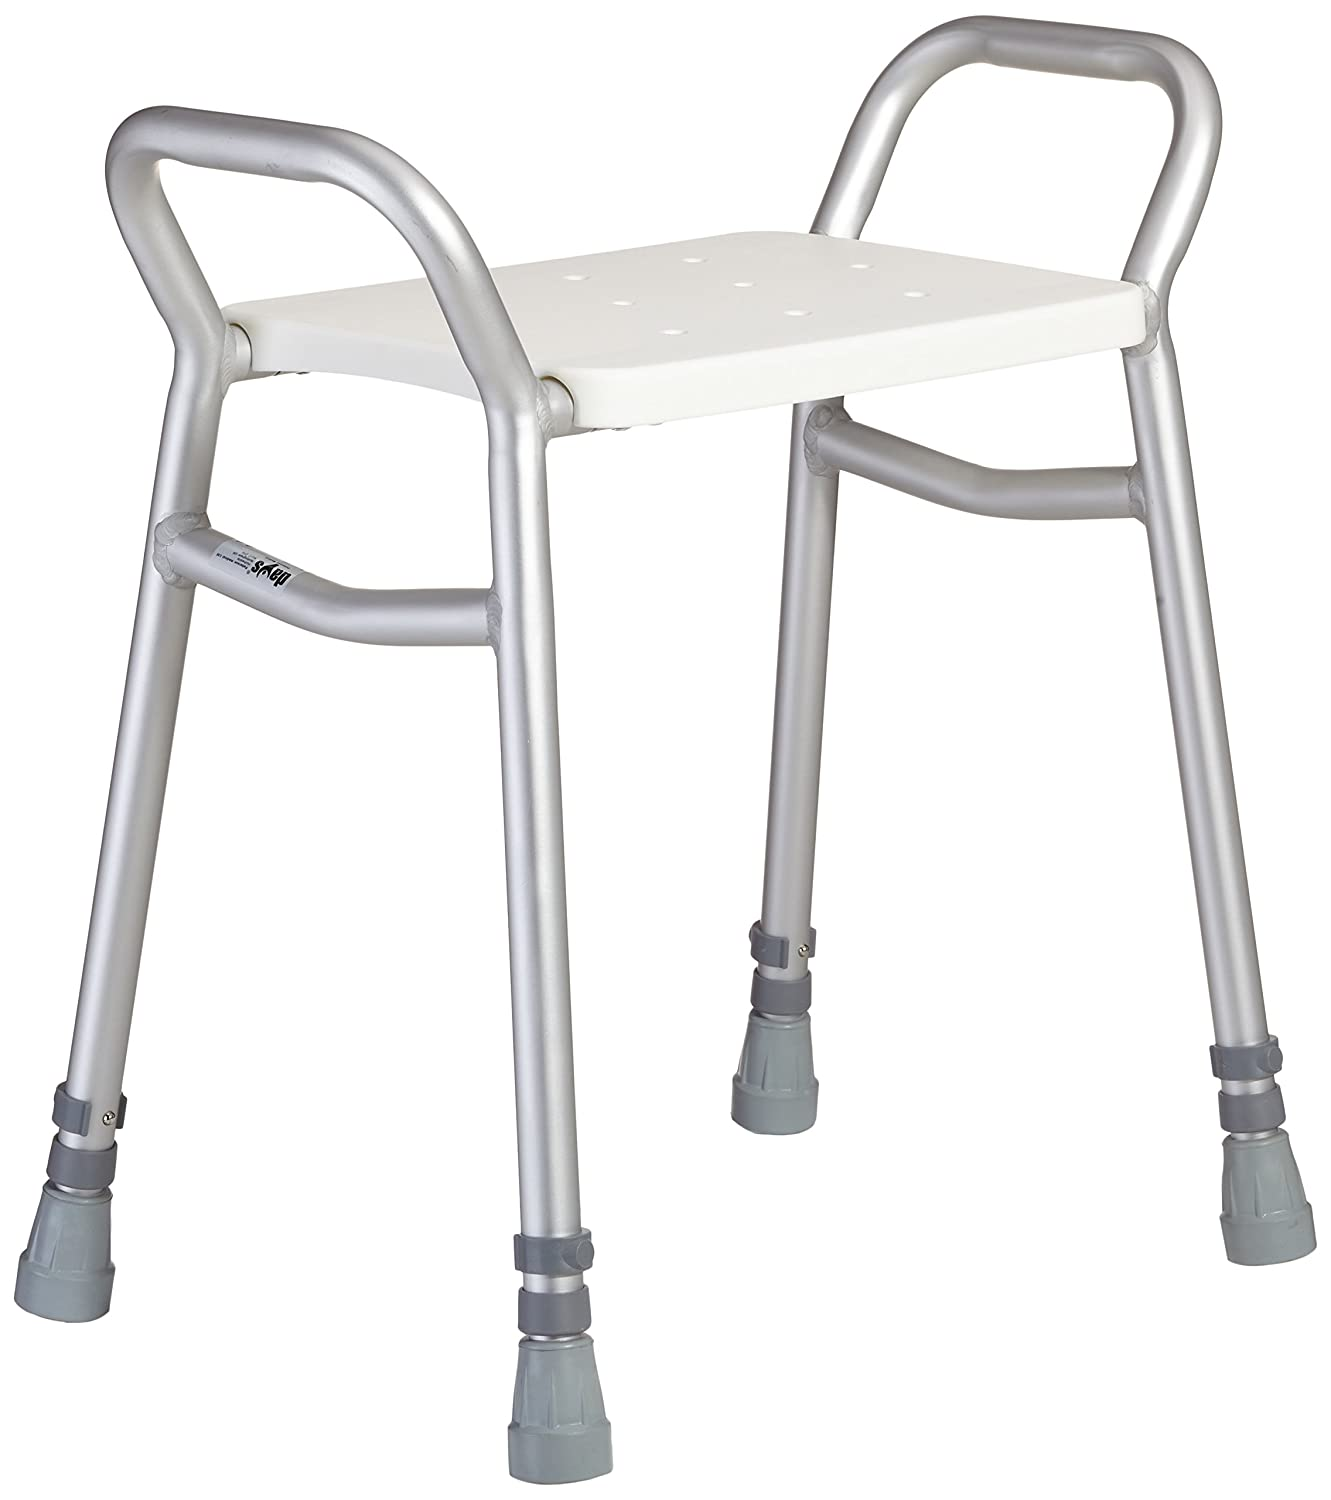 Days Lightweight Height Adjustable Shower Stool, Bathroom Seat ...